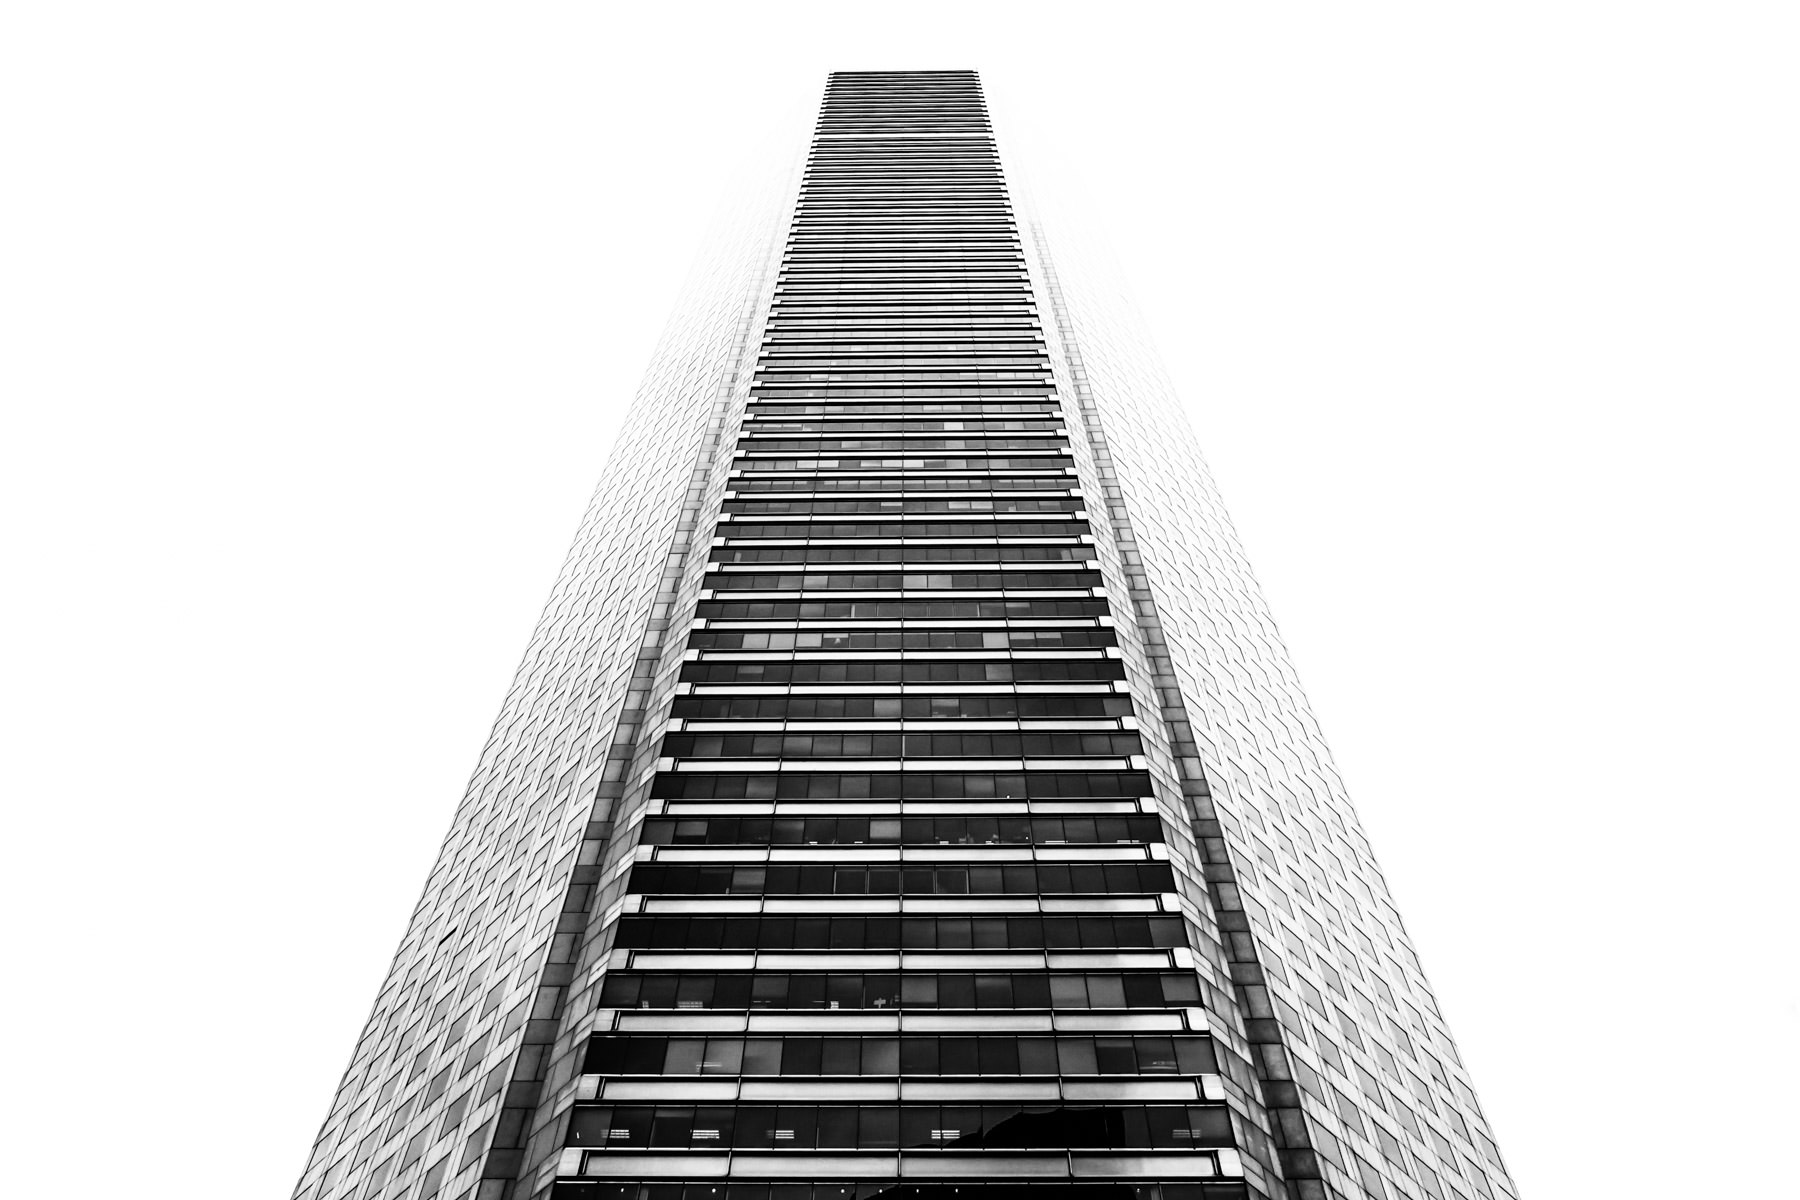 Houston's tallest skyscraper—the 1,002-foot-tall JPMorgan Chase Tower—rises into the overcast sky in the city's downtown.